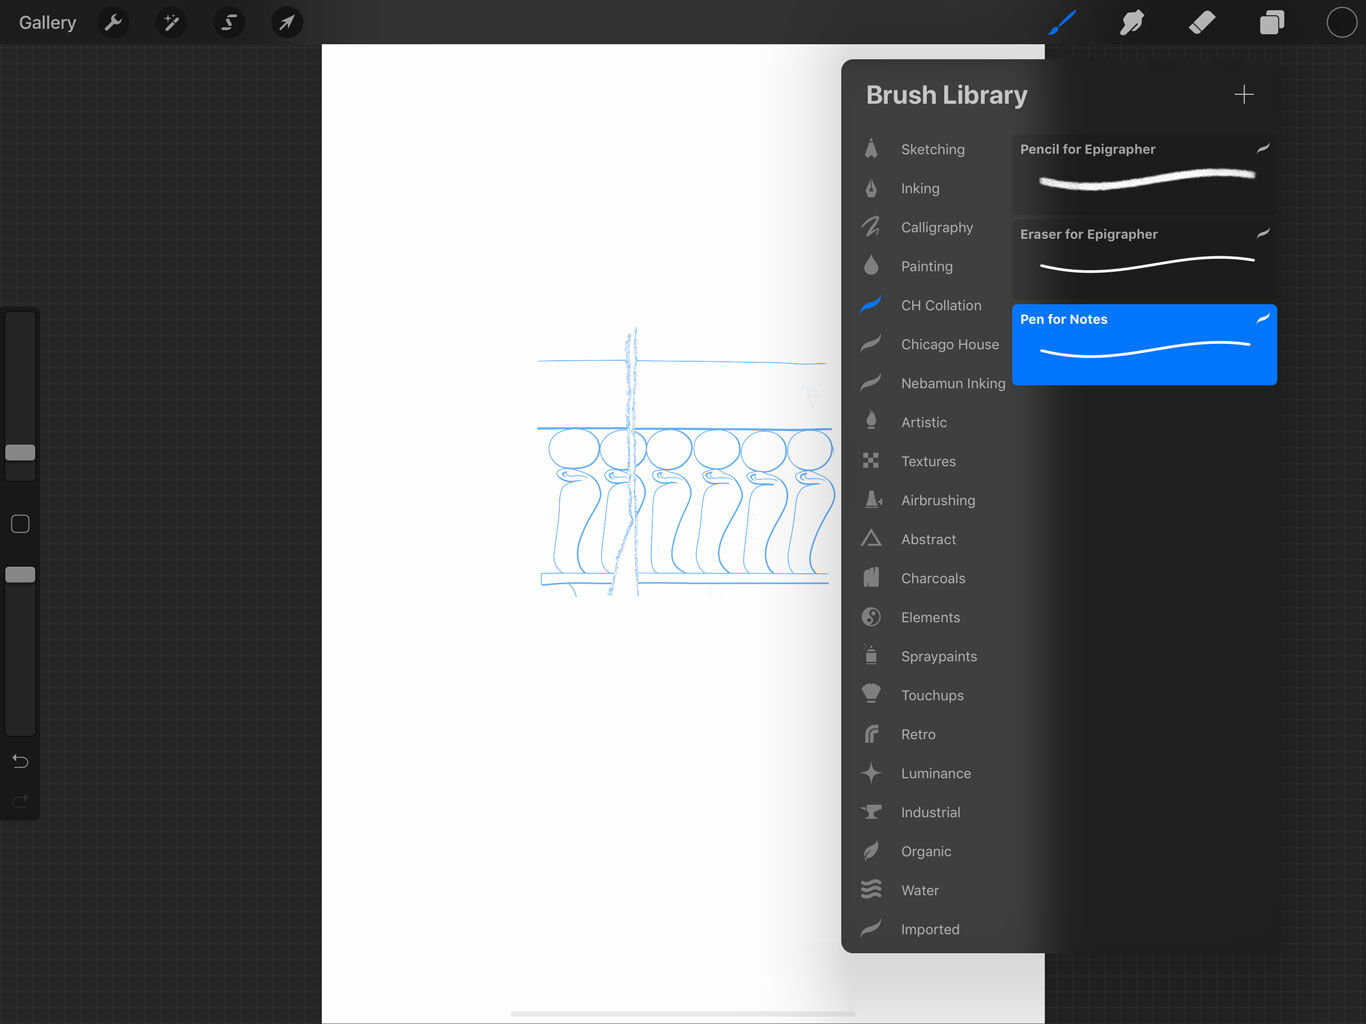 Setting up a collation sheet in Procreate